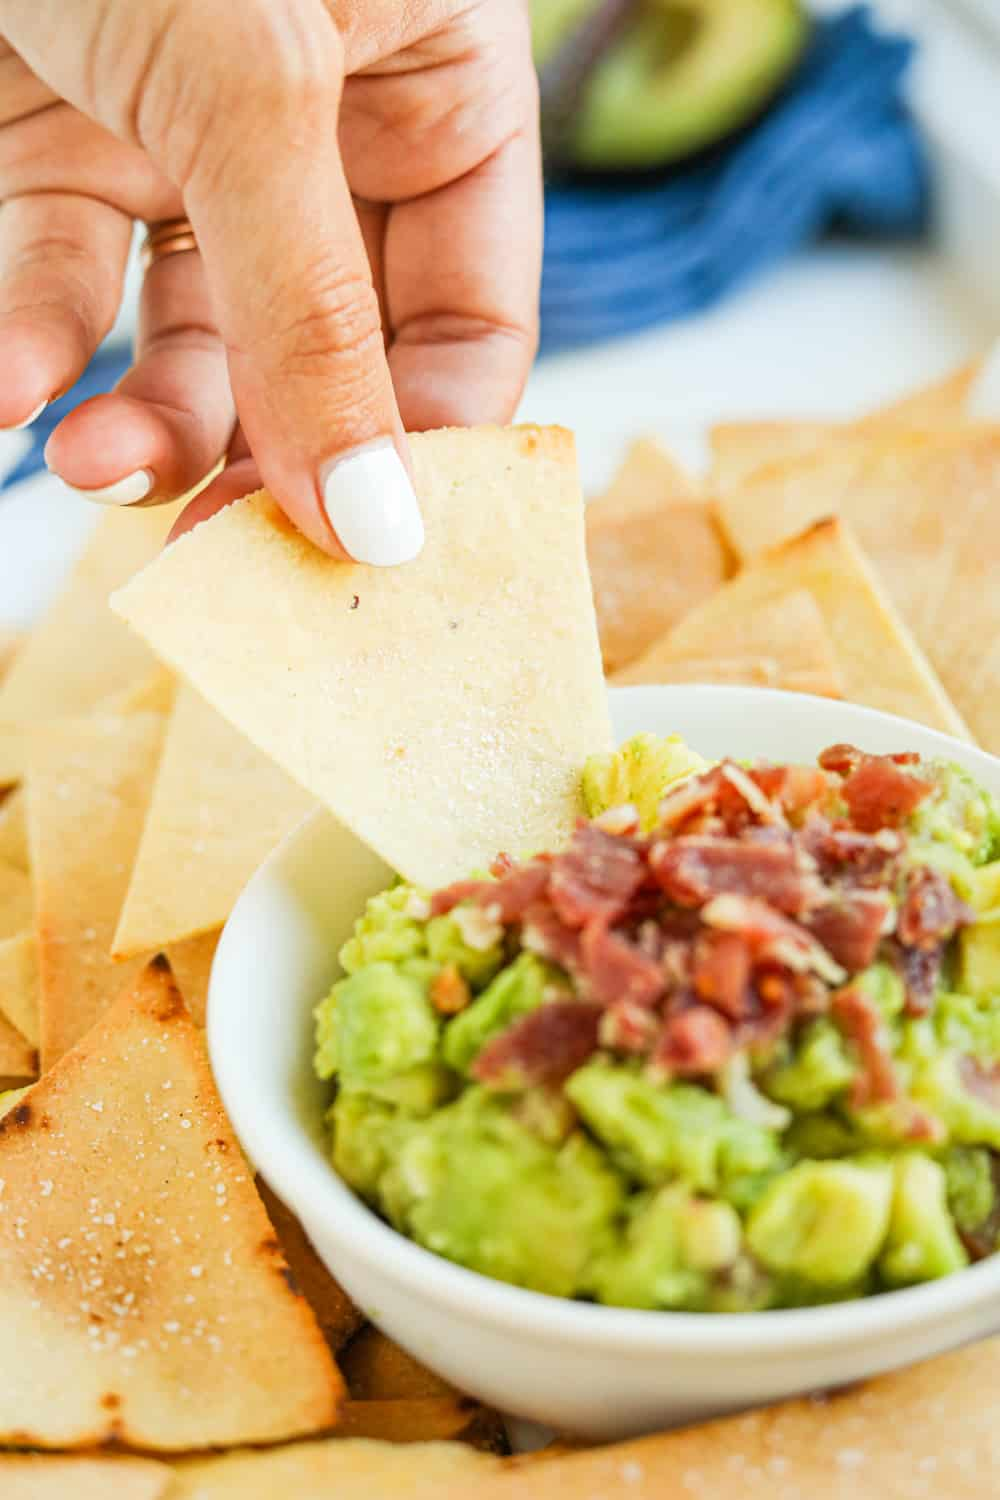 A tortilla chip being dipped into a bowl of guacamole topped with bacon.